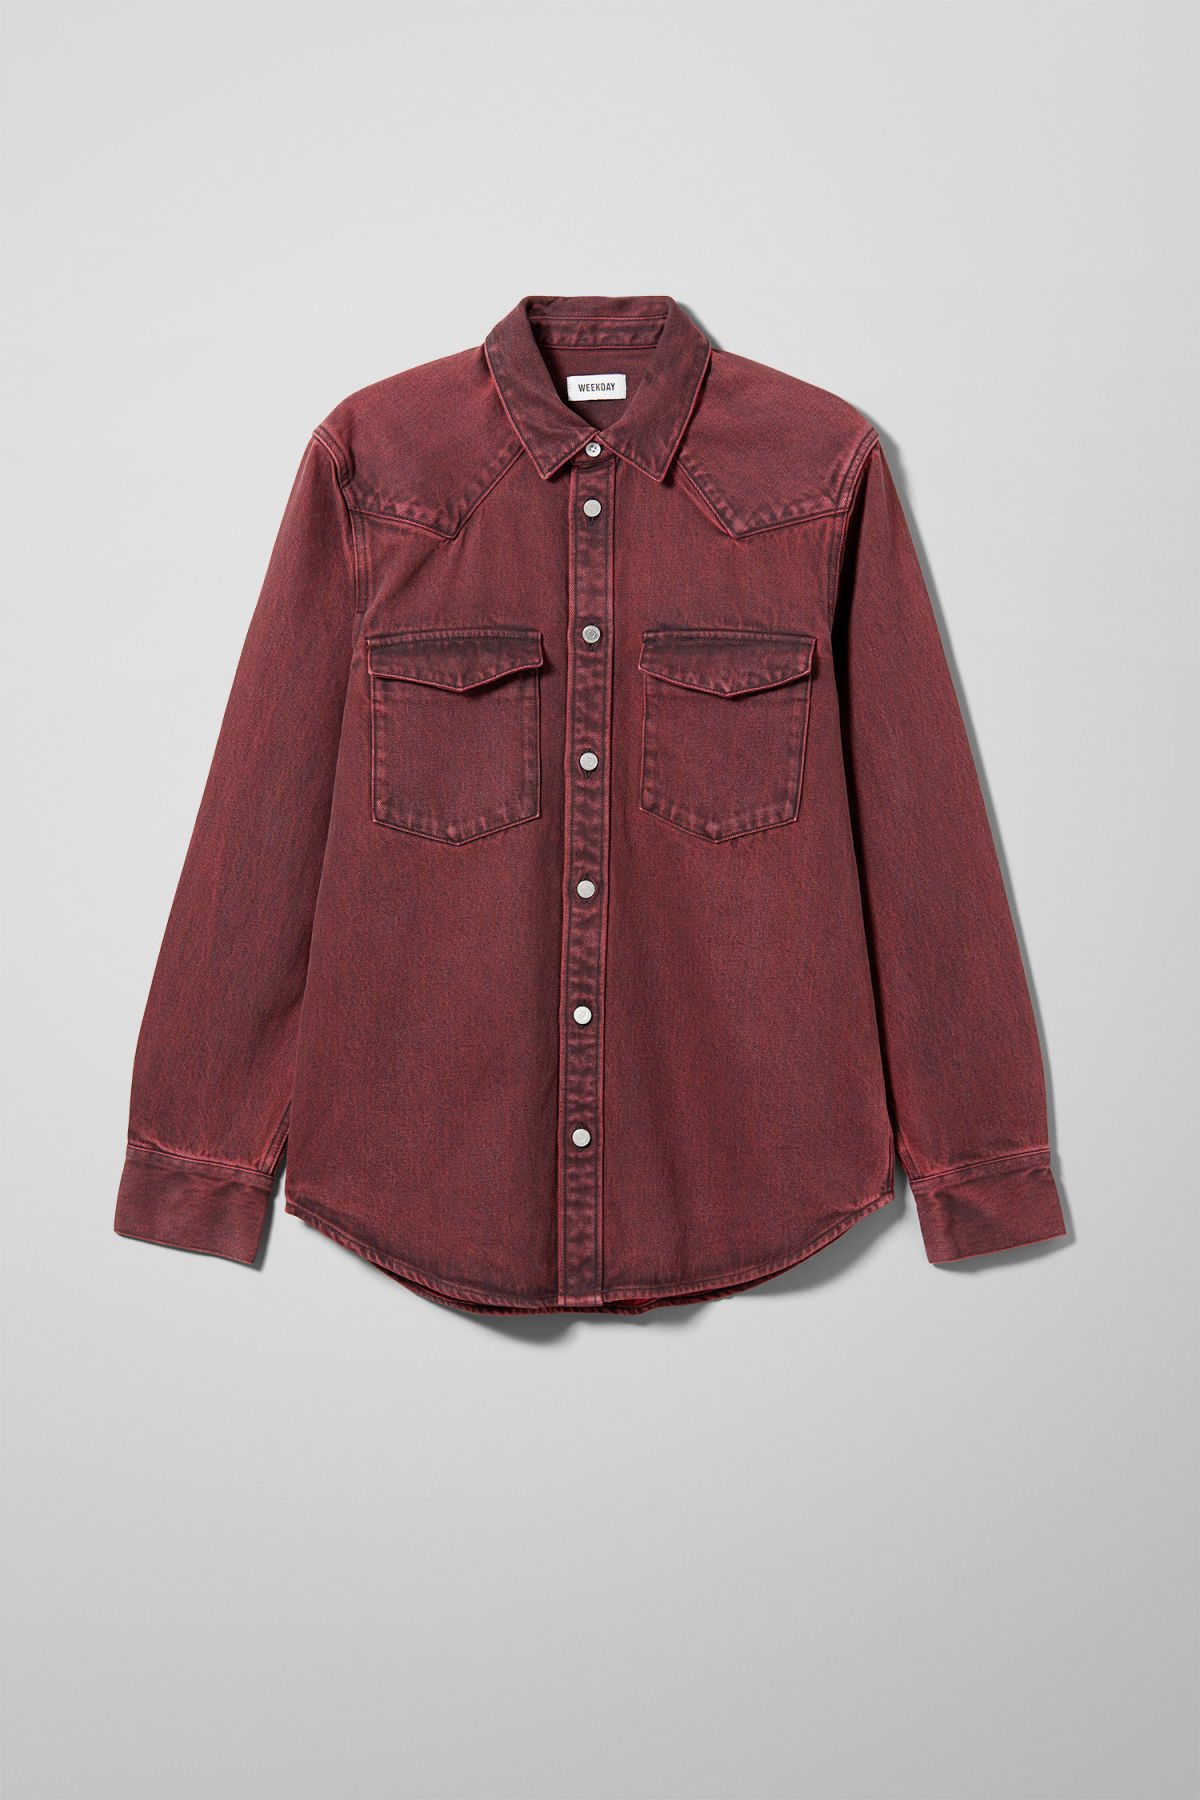 4dfcc71fafb8 Jolly Rosewood Shirt - Red - Shirts - Weekday